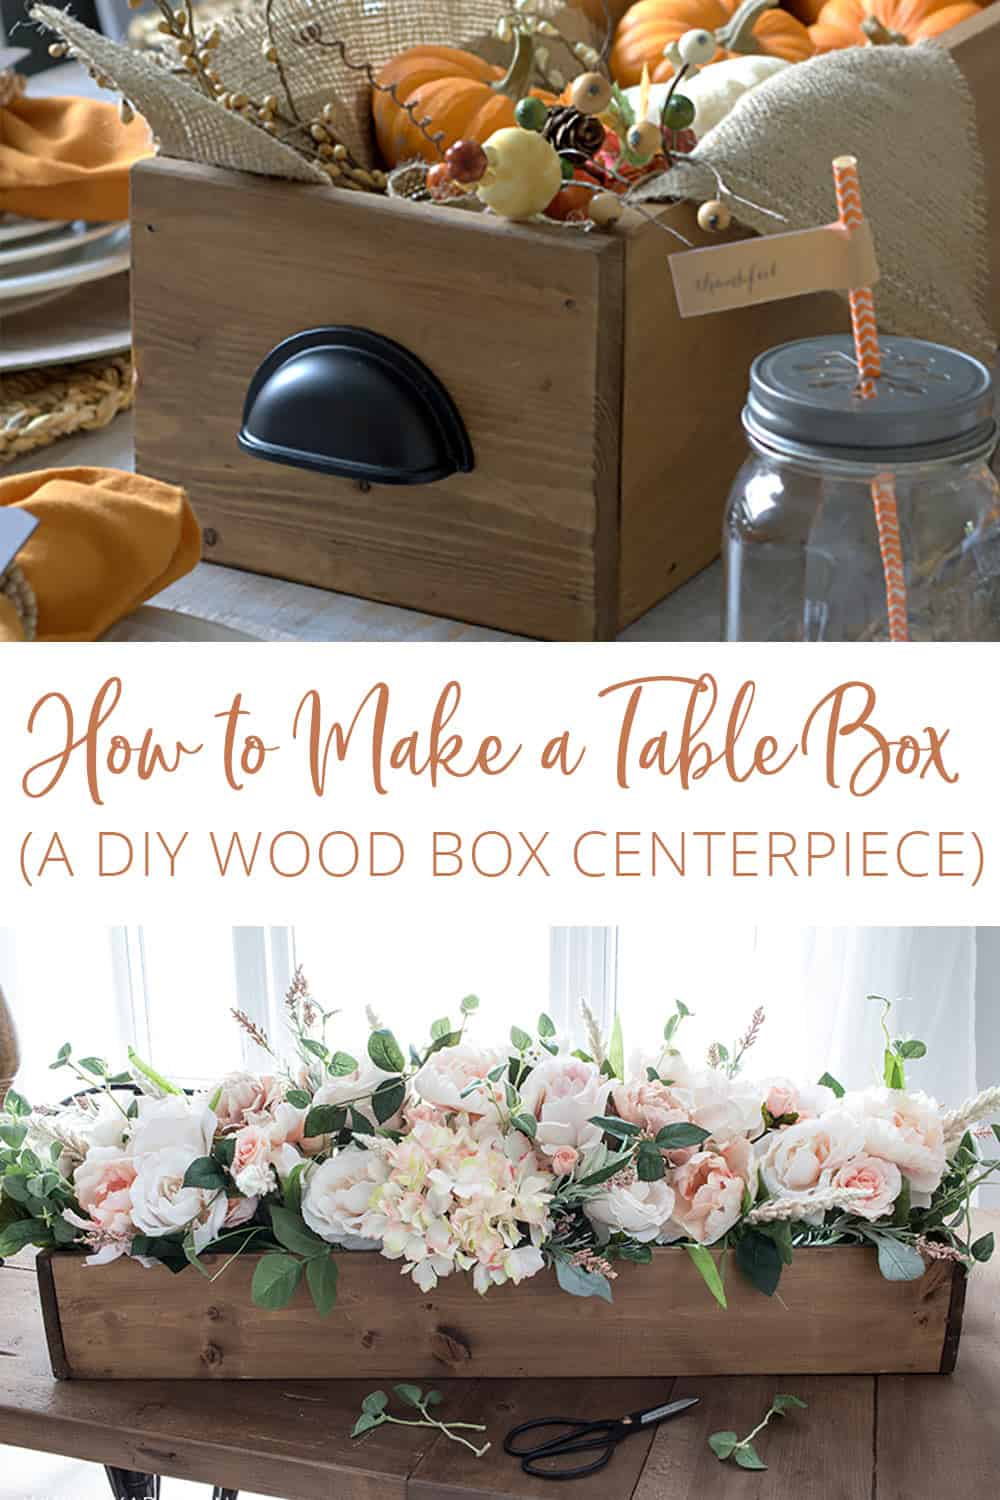 How to Make a Table Box | A DIY Wood Box Centerpiece